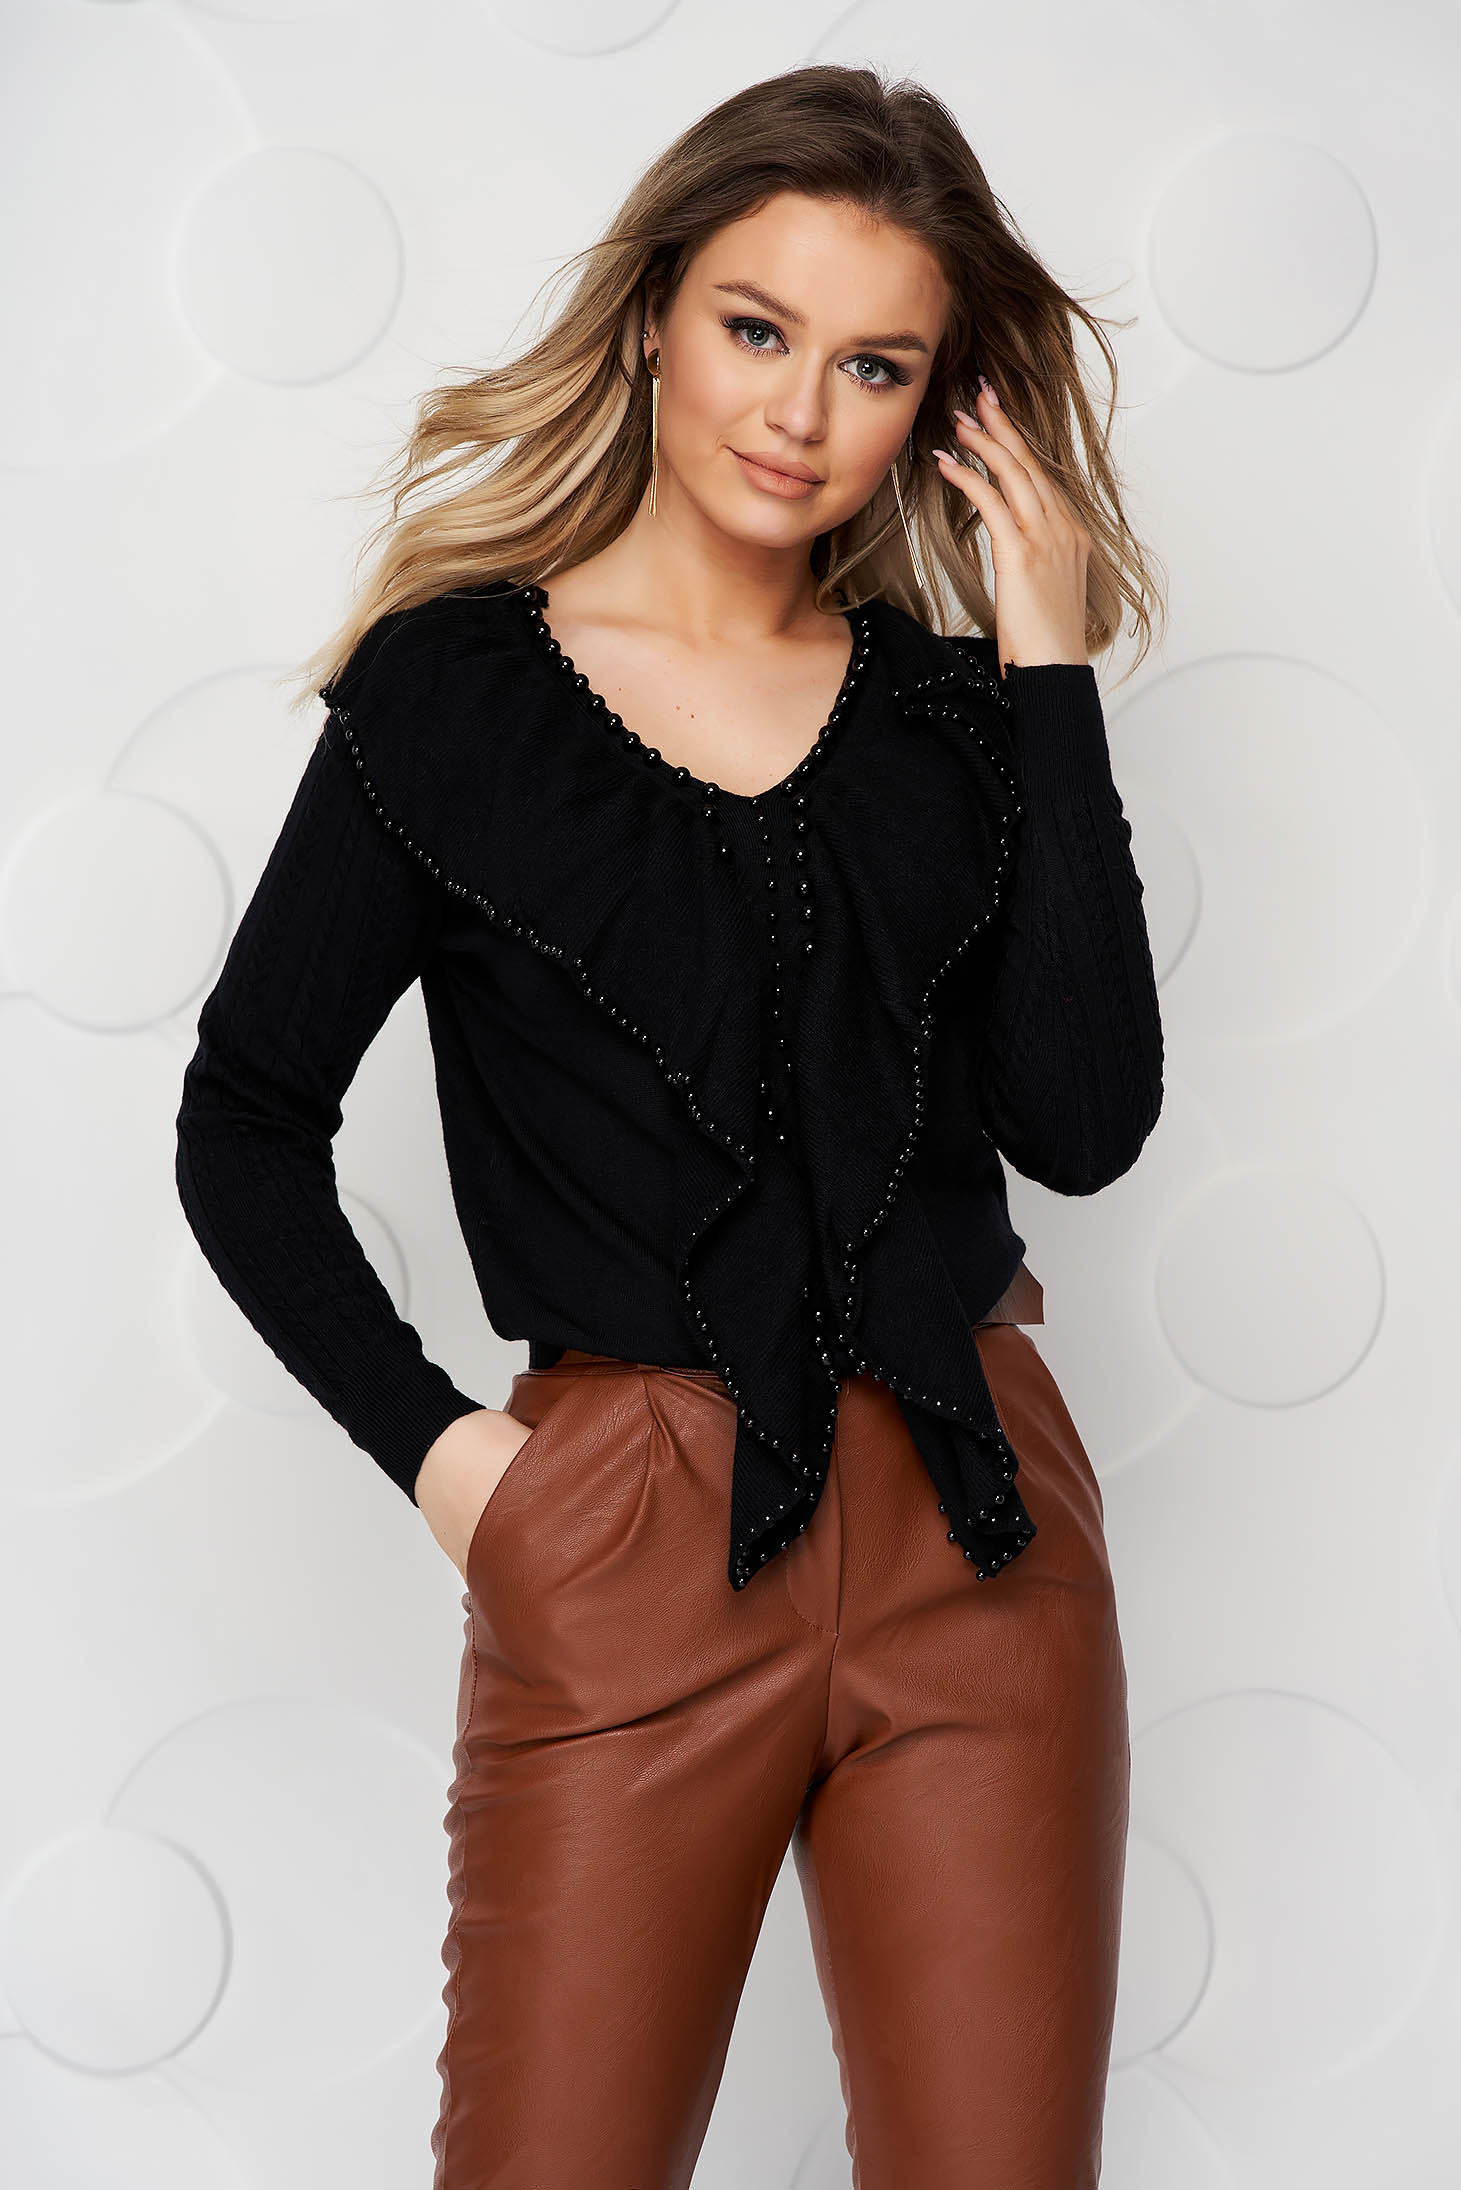 Black women`s blouse knitted from striped fabric with small beads embellished details